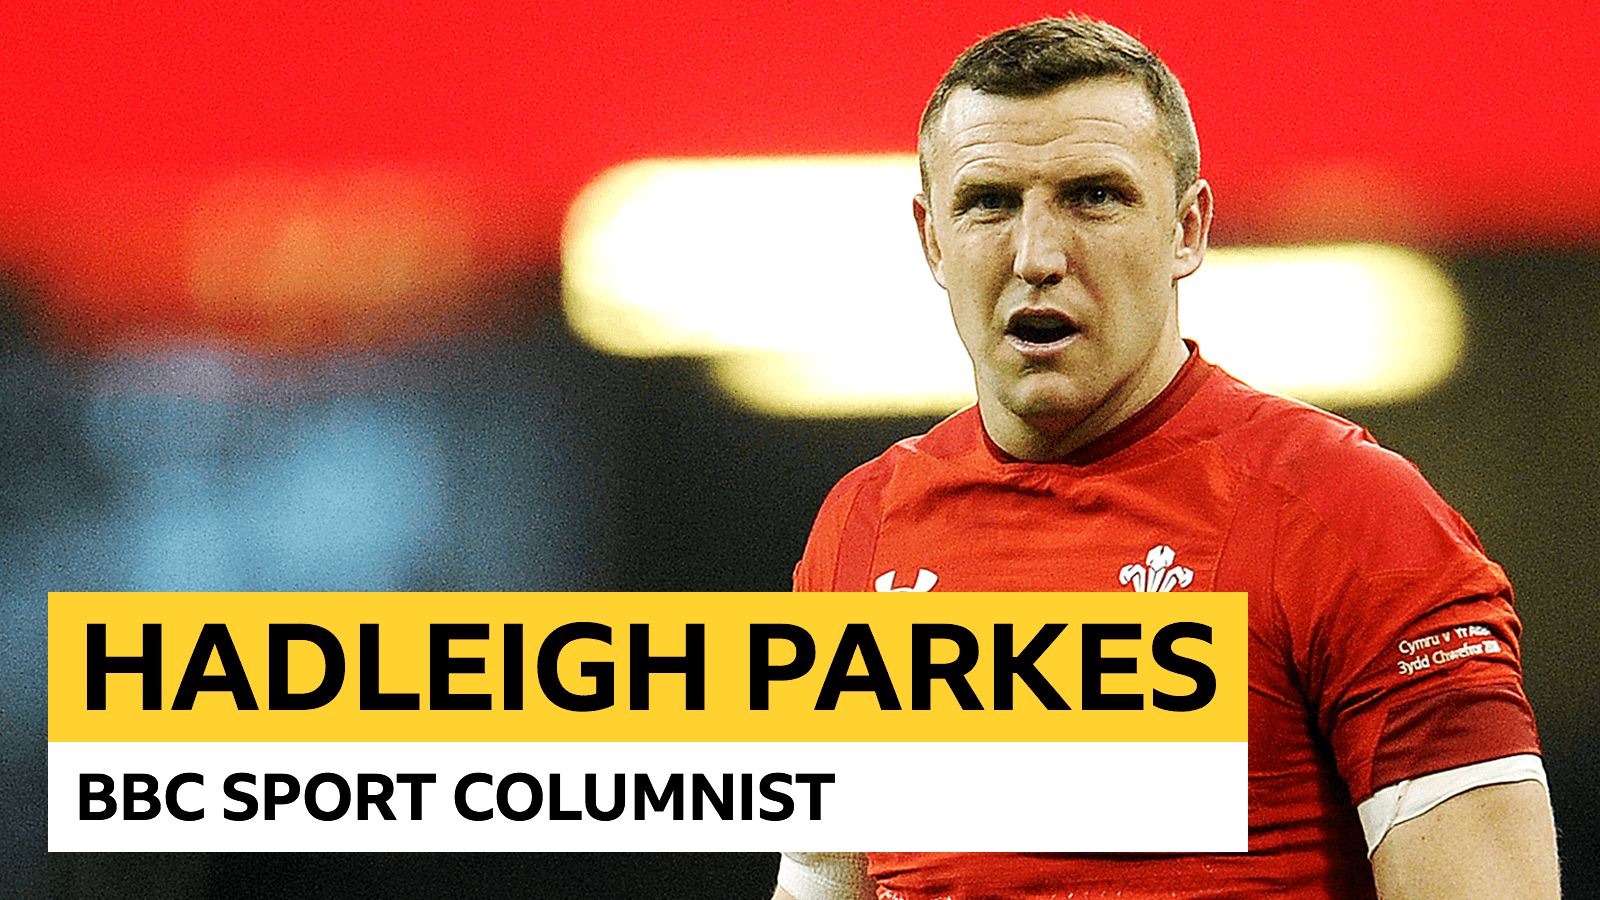 'I get recognised in the supermarket now': Hadleigh Parkes on the Grand Slam, the Prince and minister